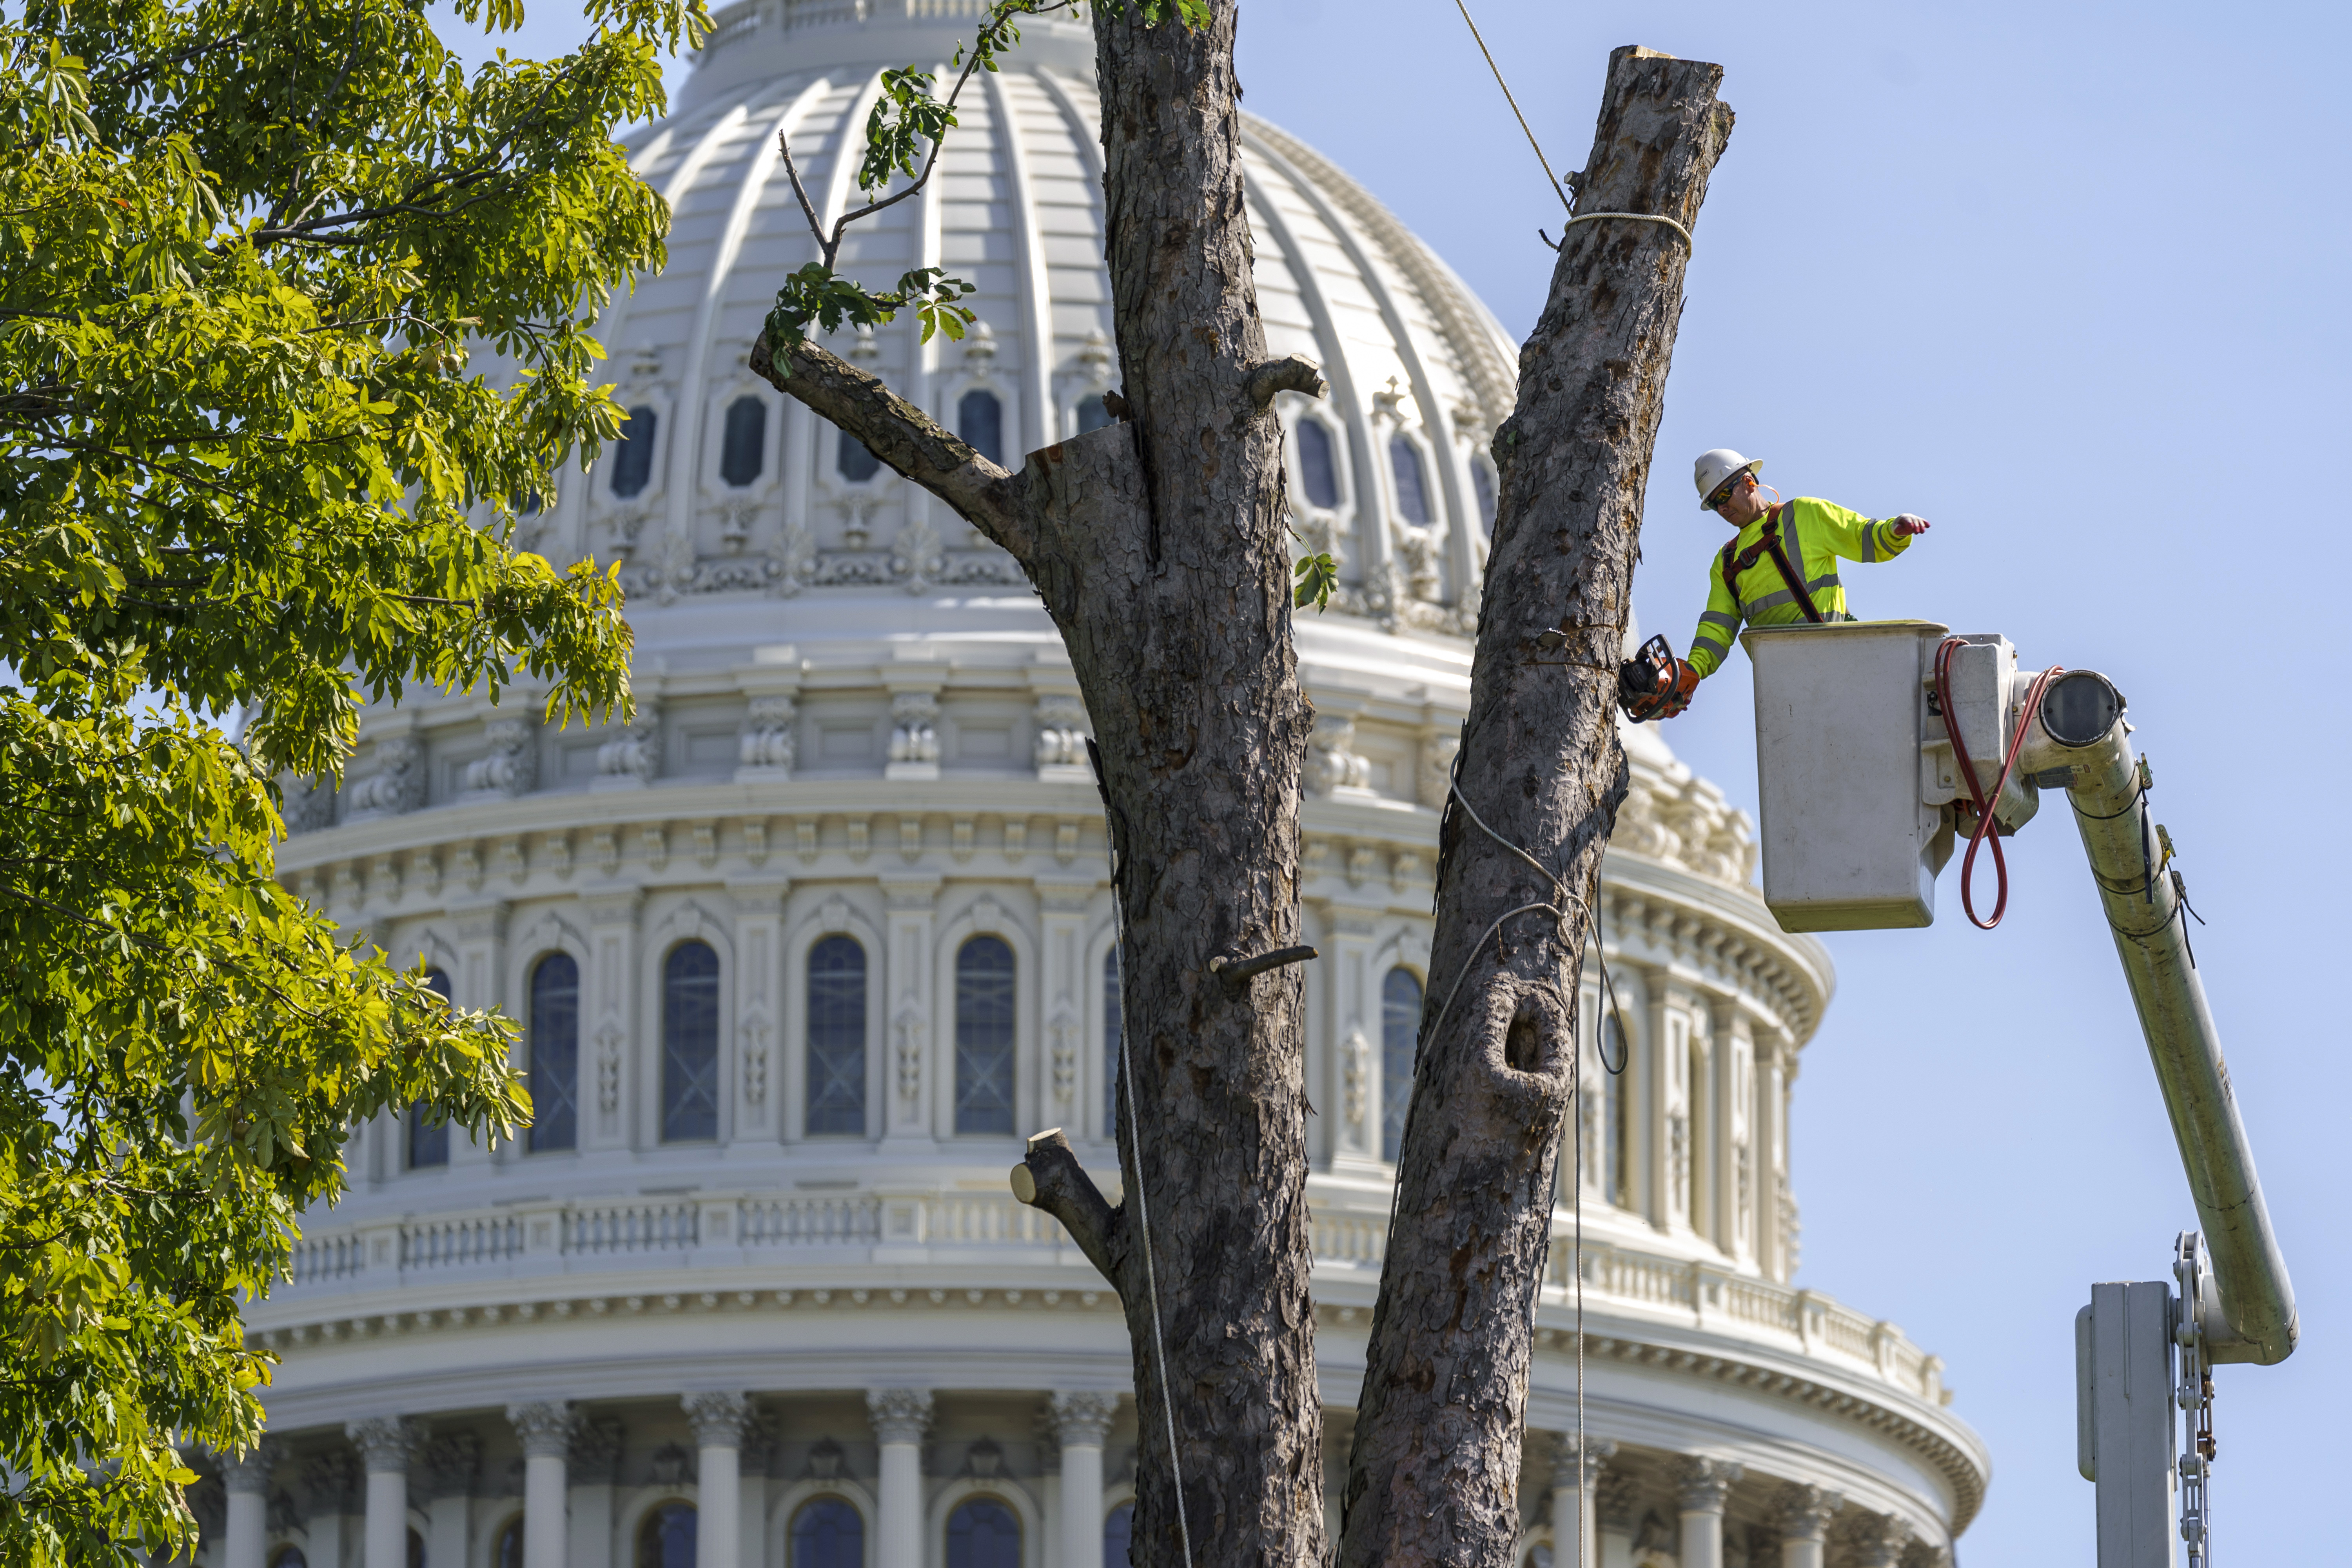 Debt ceiling debates in Congress, consumer confidence: What to know this week